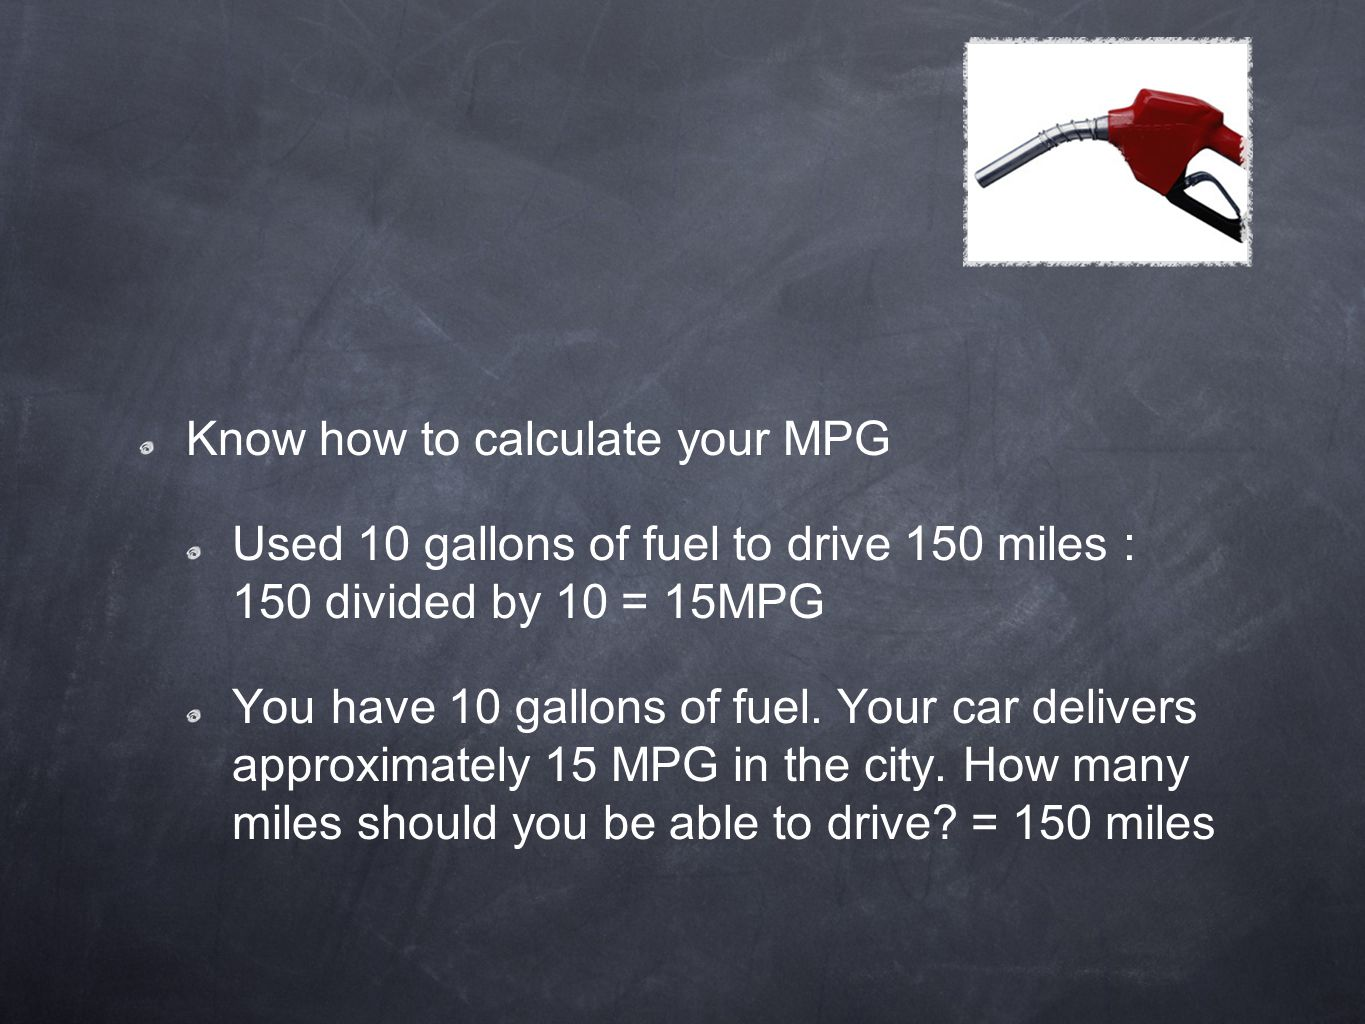 Know how to calculate your MPG